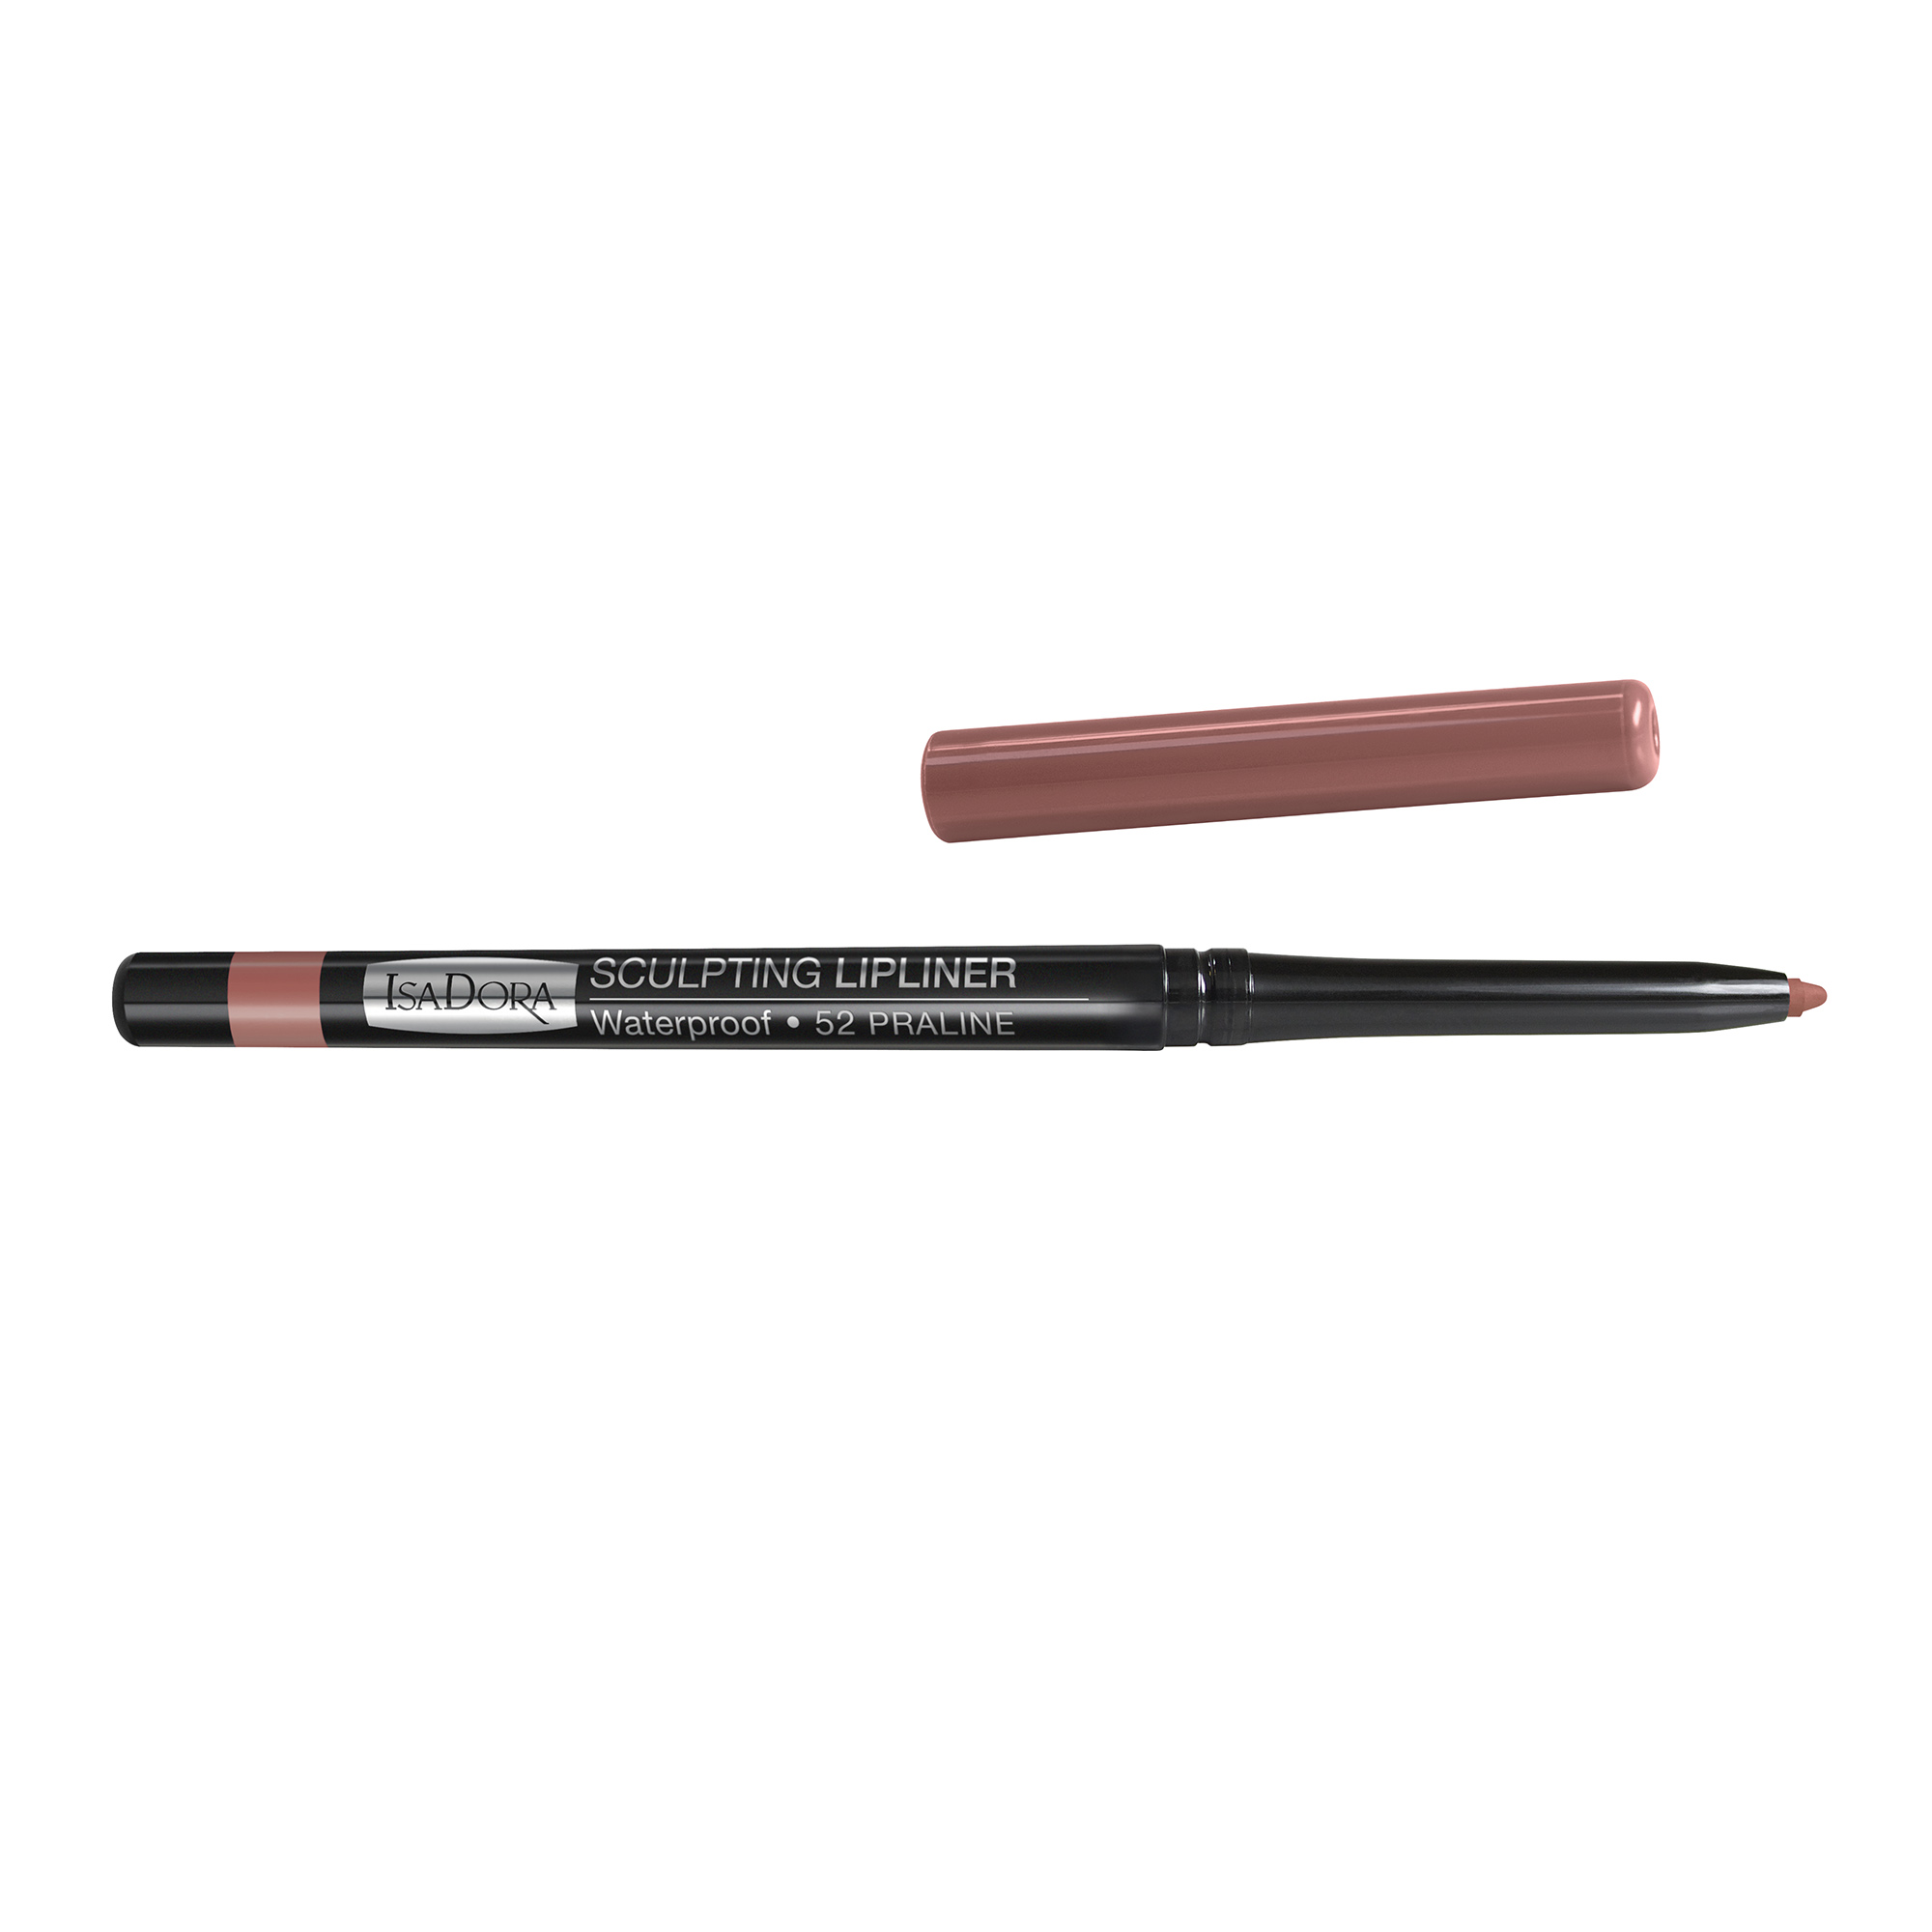 Sculpting Lip Liner Waterproof 52 Praline